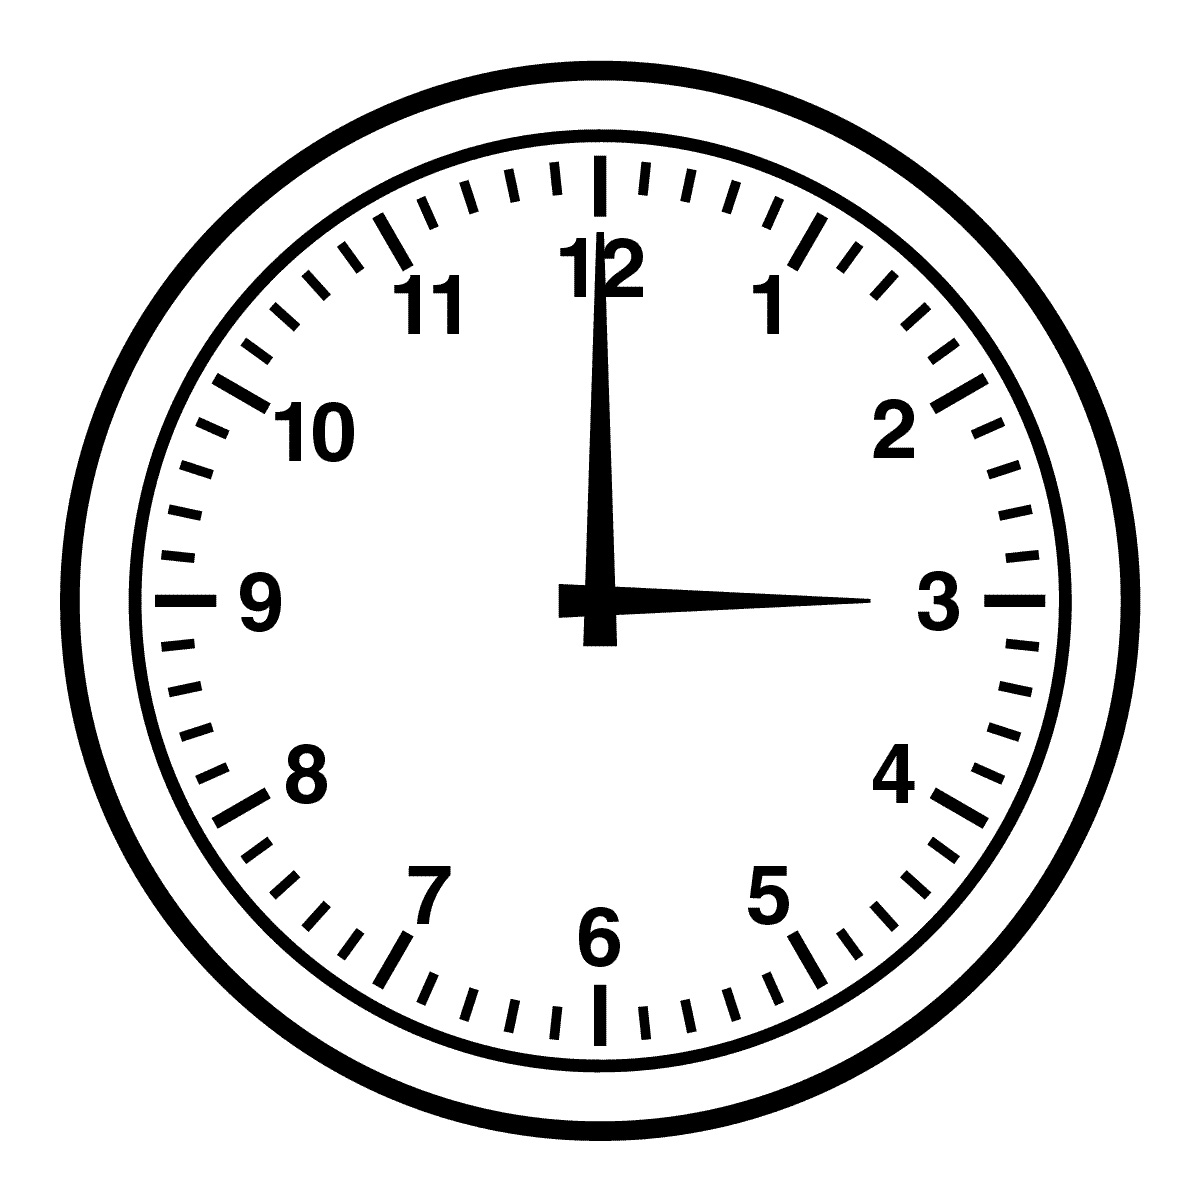 Clock clipart black and white jpg transparent stock 50+ Clock Clipart Black And White | ClipartLook jpg transparent stock